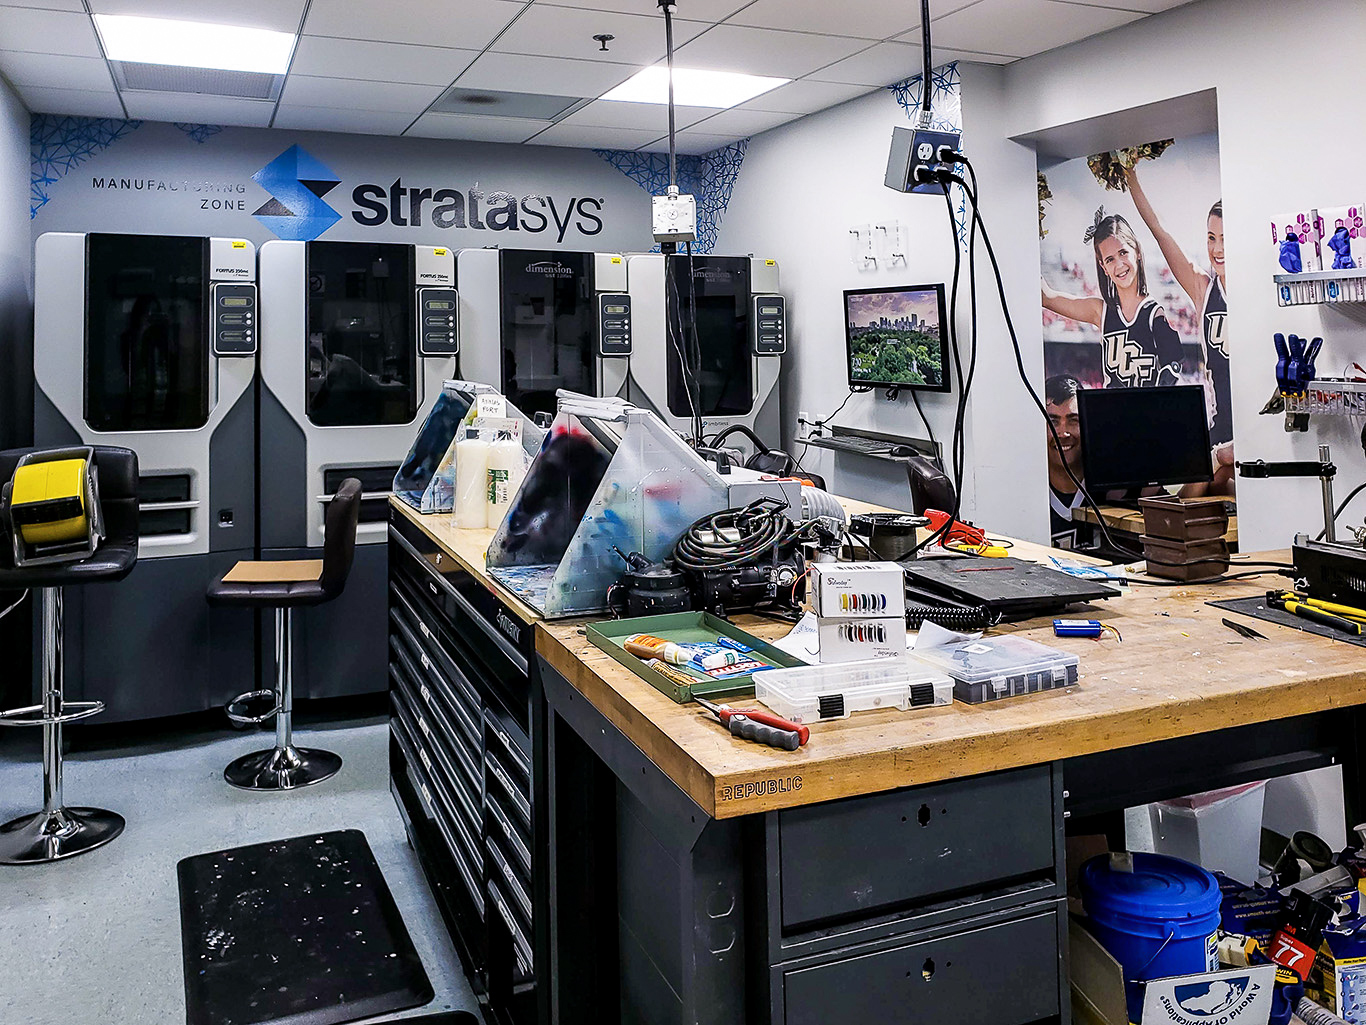 The 3D-printers used at the Limbitless lab to create the bionic arms